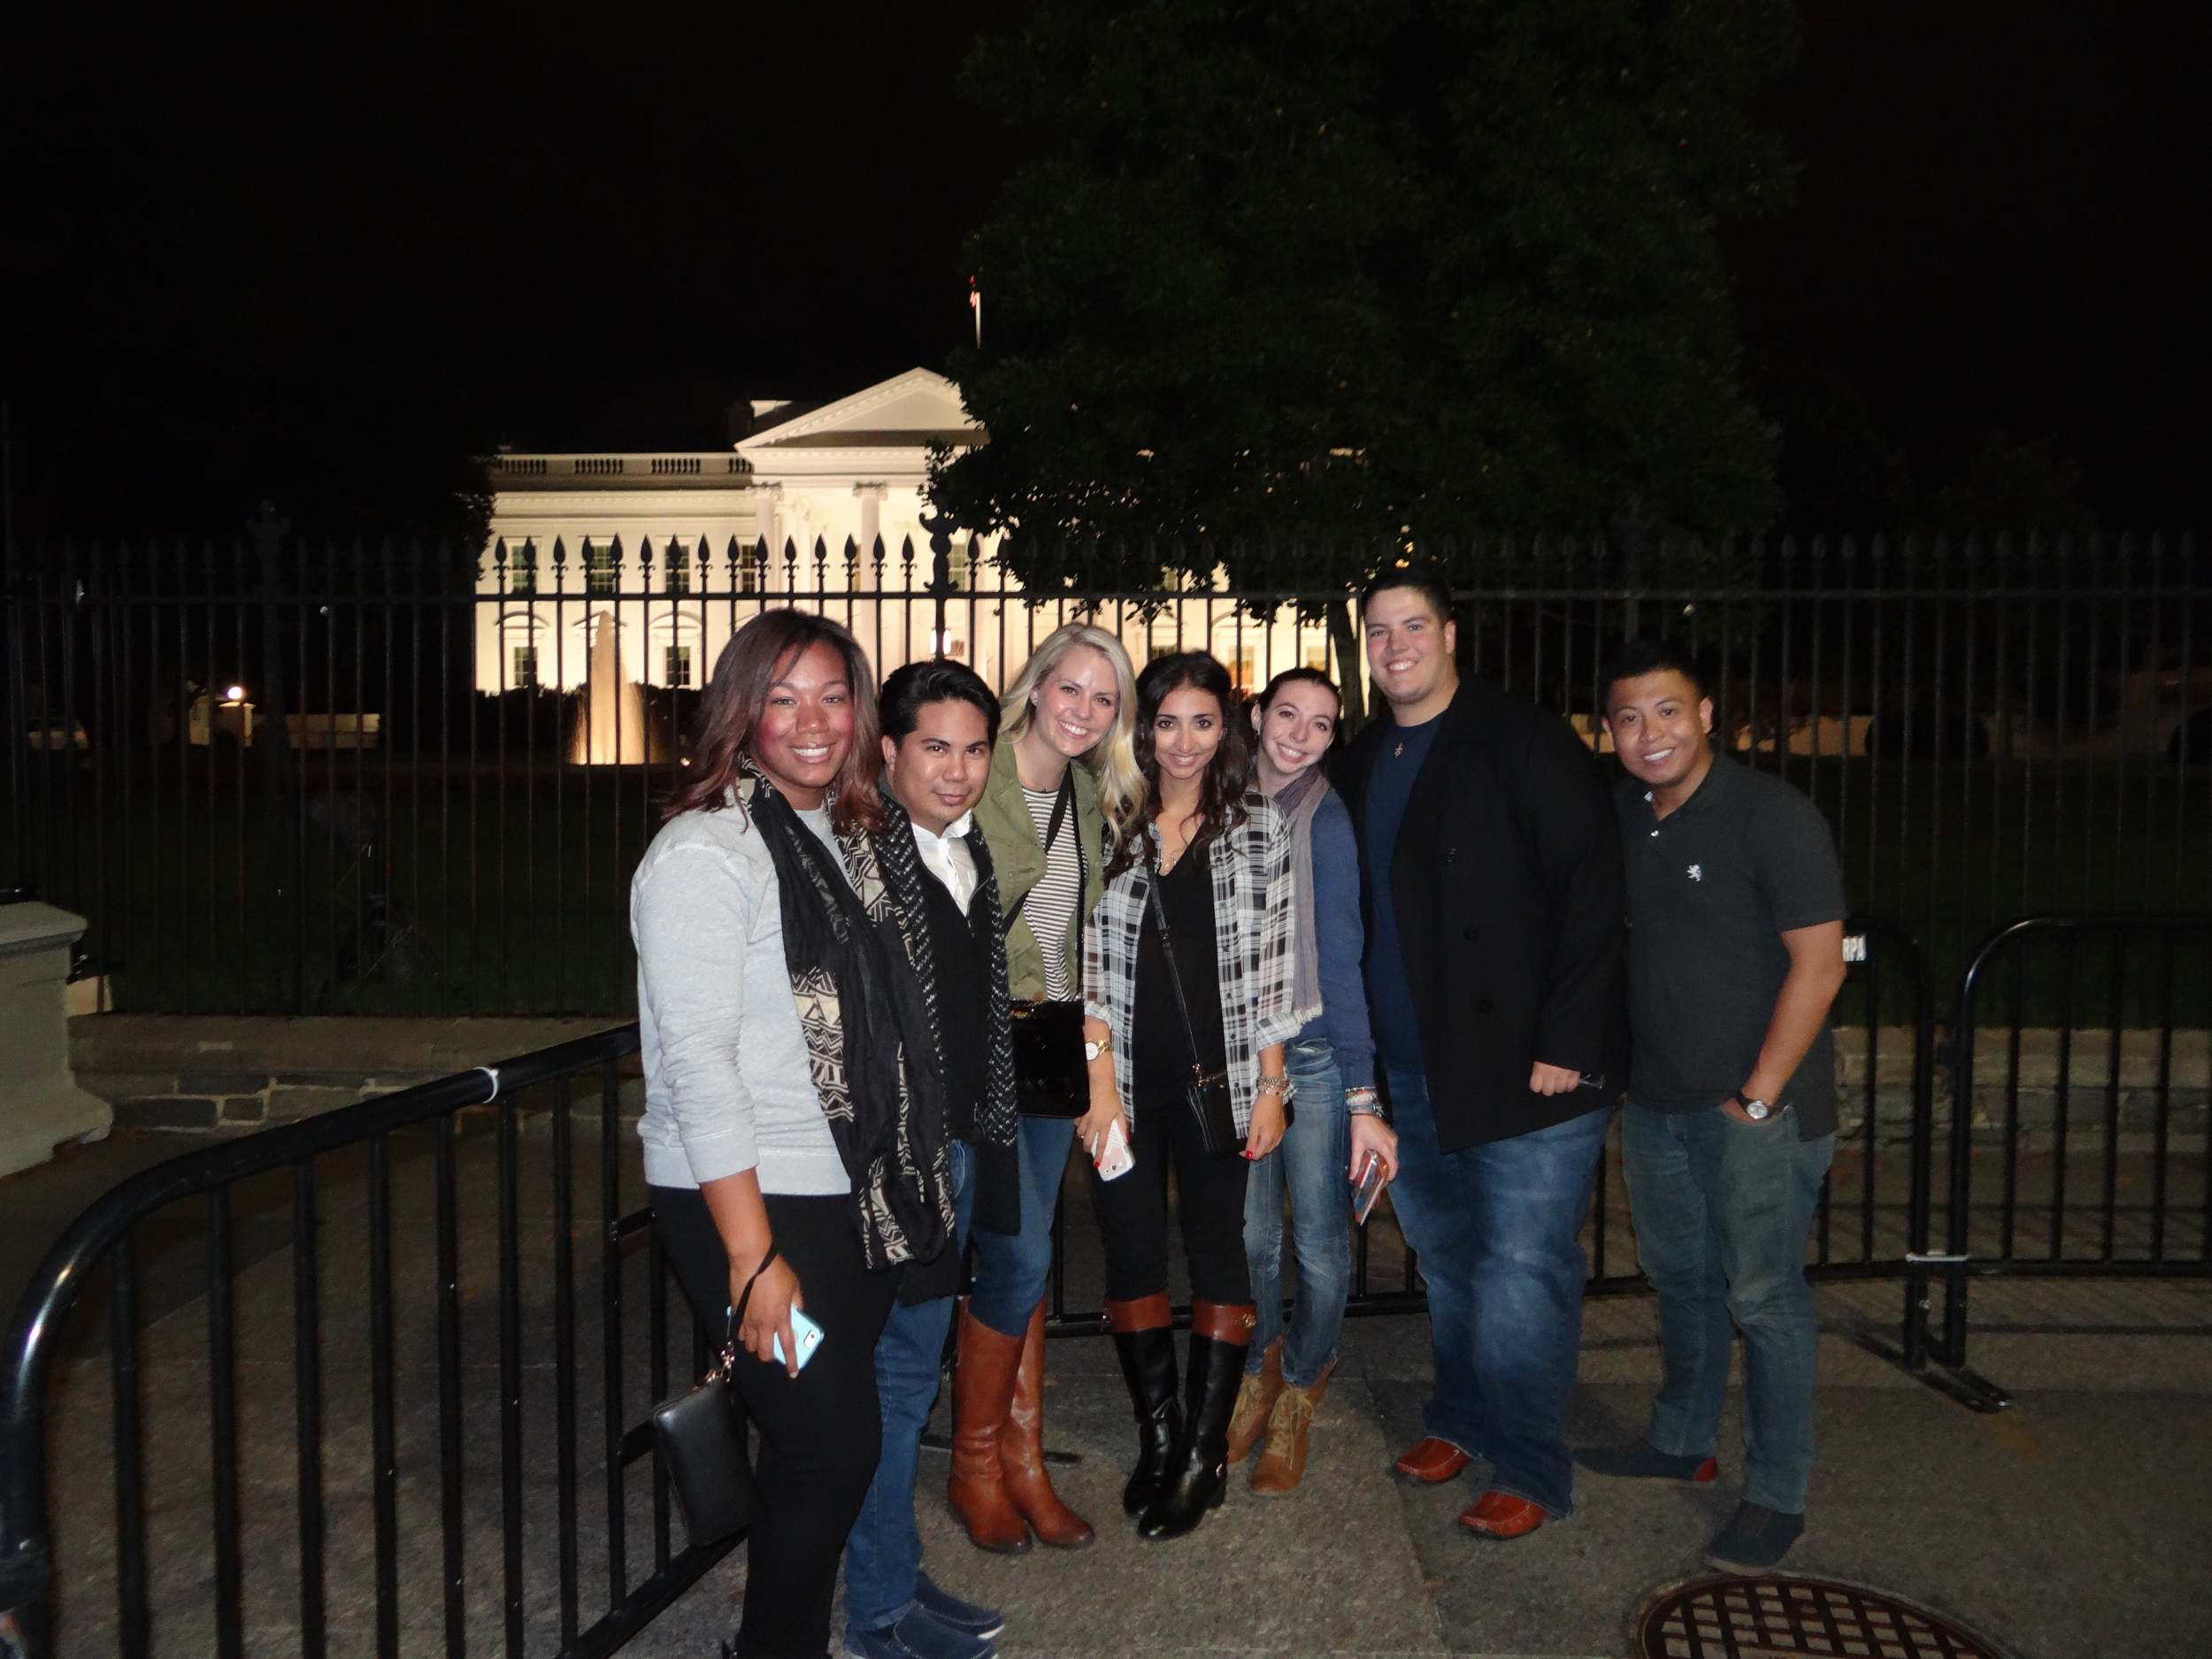 PRSSA members sightseeing at the White House.